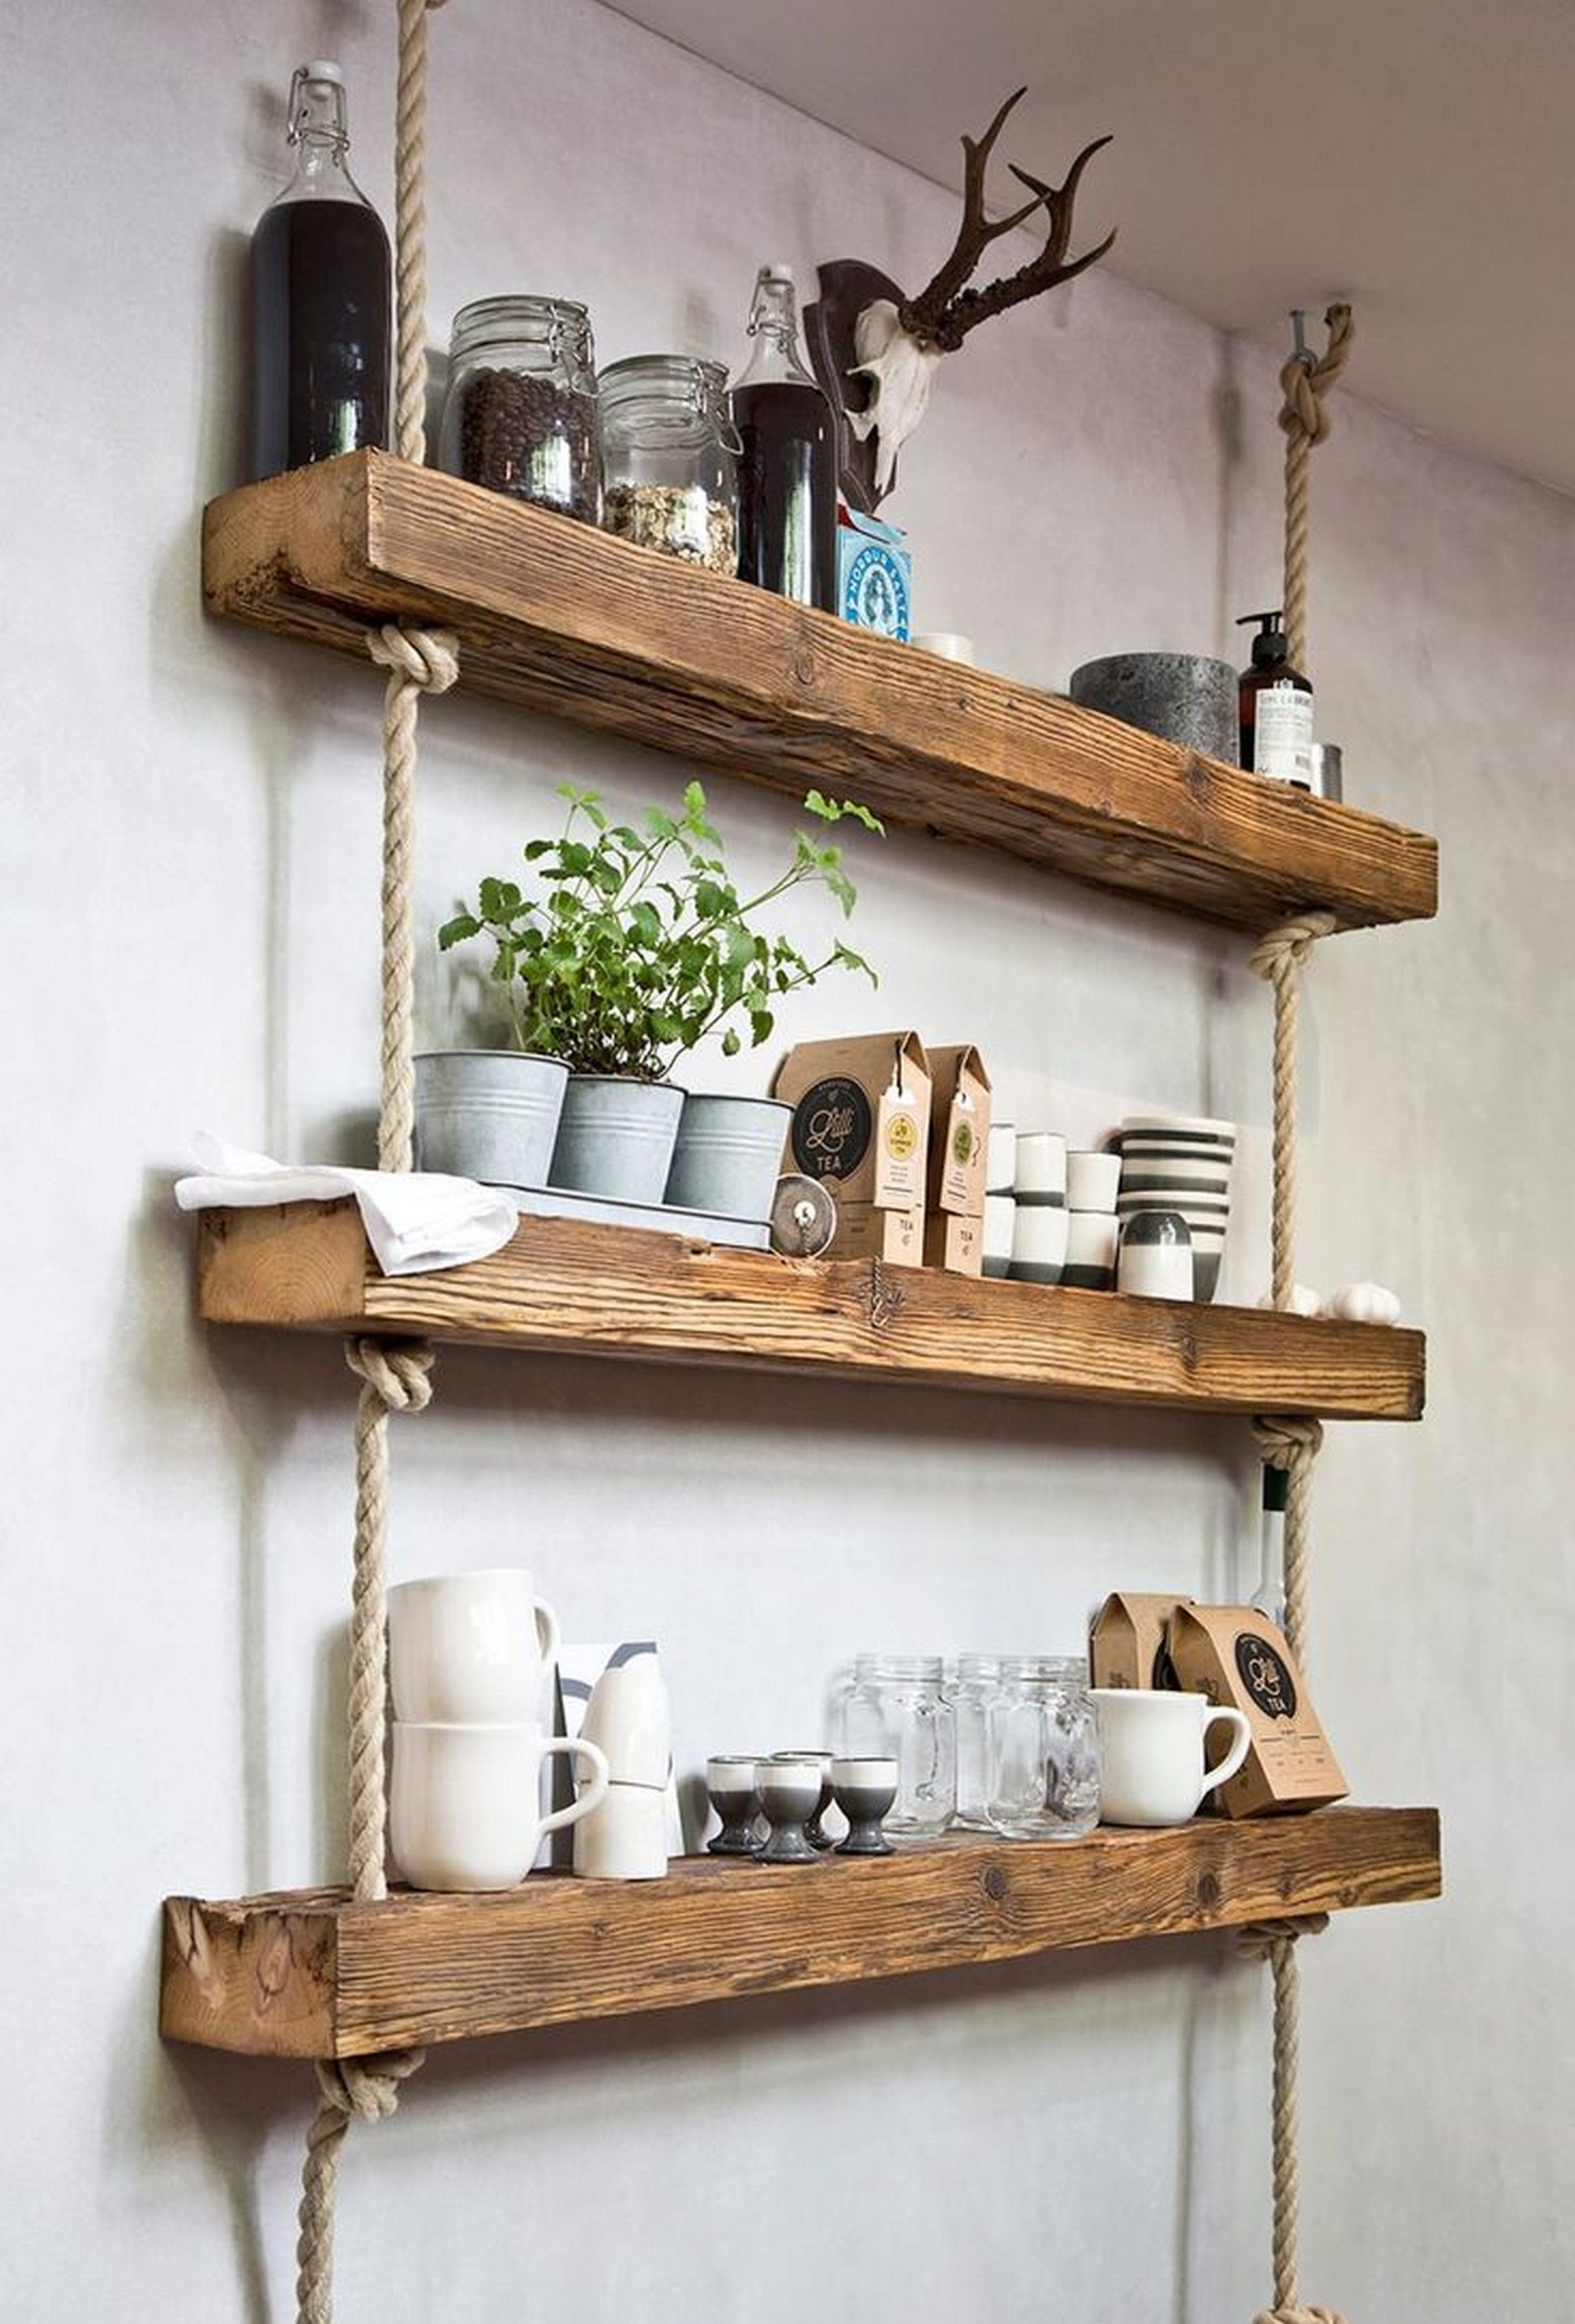 easy and stylish diy wooden wall shelves ideas byvanie